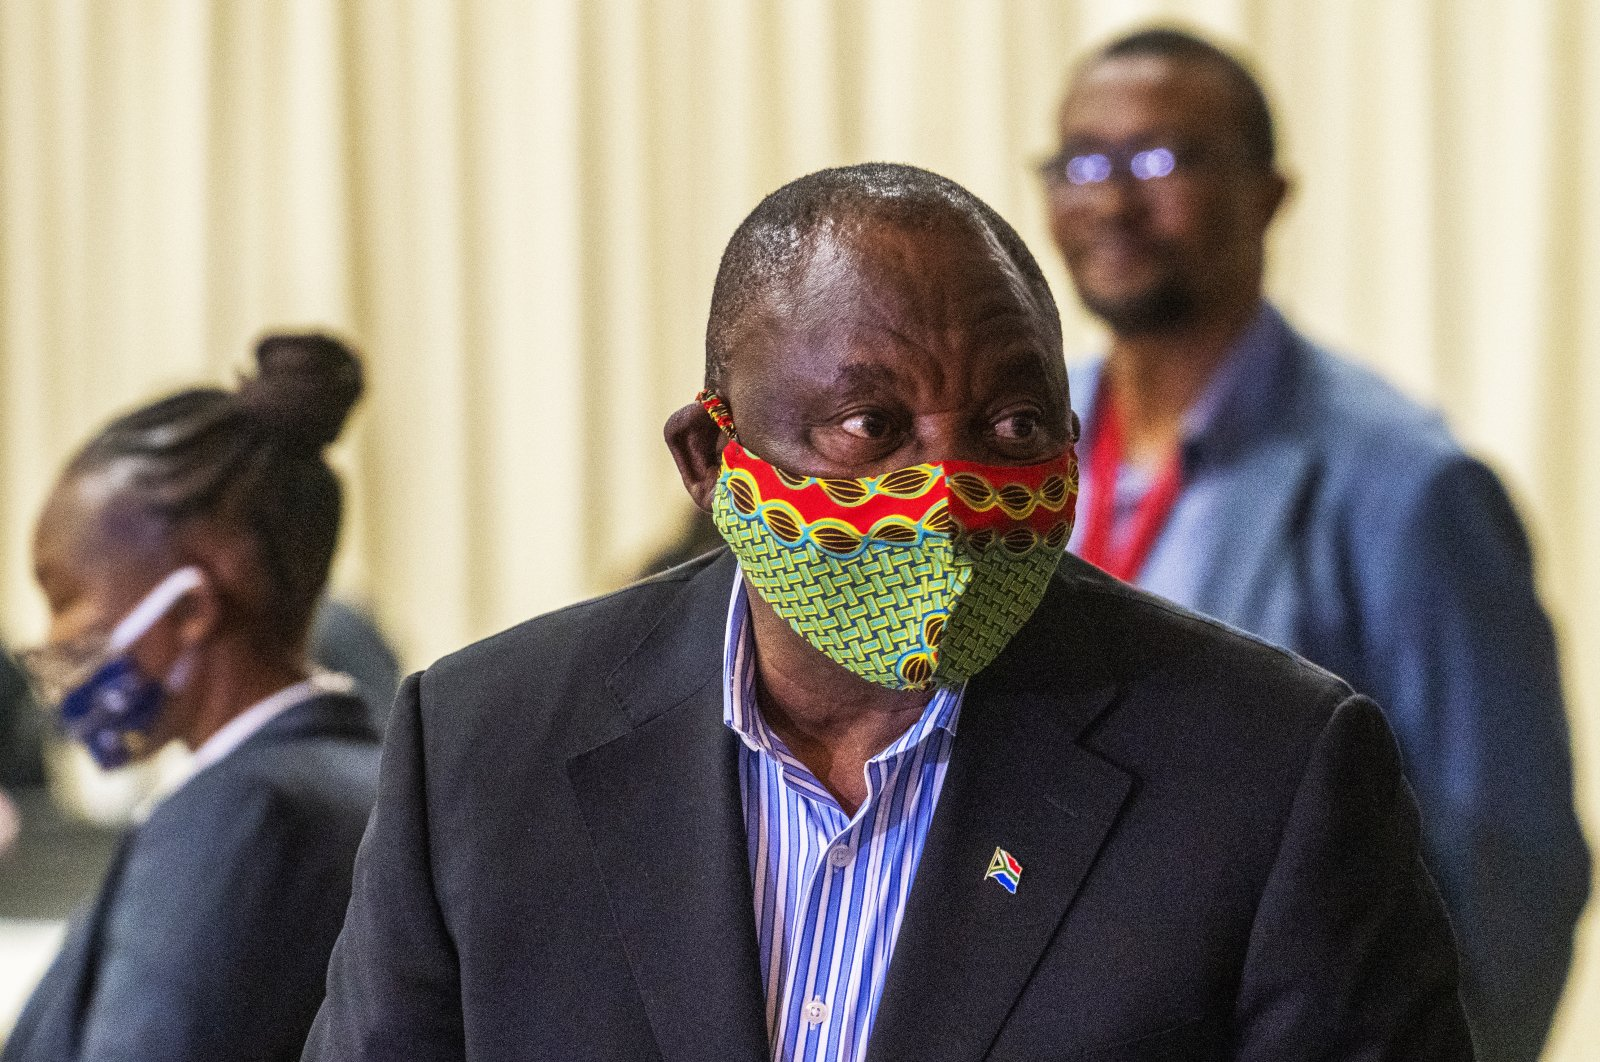 South African President Cyril Ramaphosa arrives at the NASREC Expo Centre in Johannesburg, South Africa, April 24, 2020. (AP Photo)